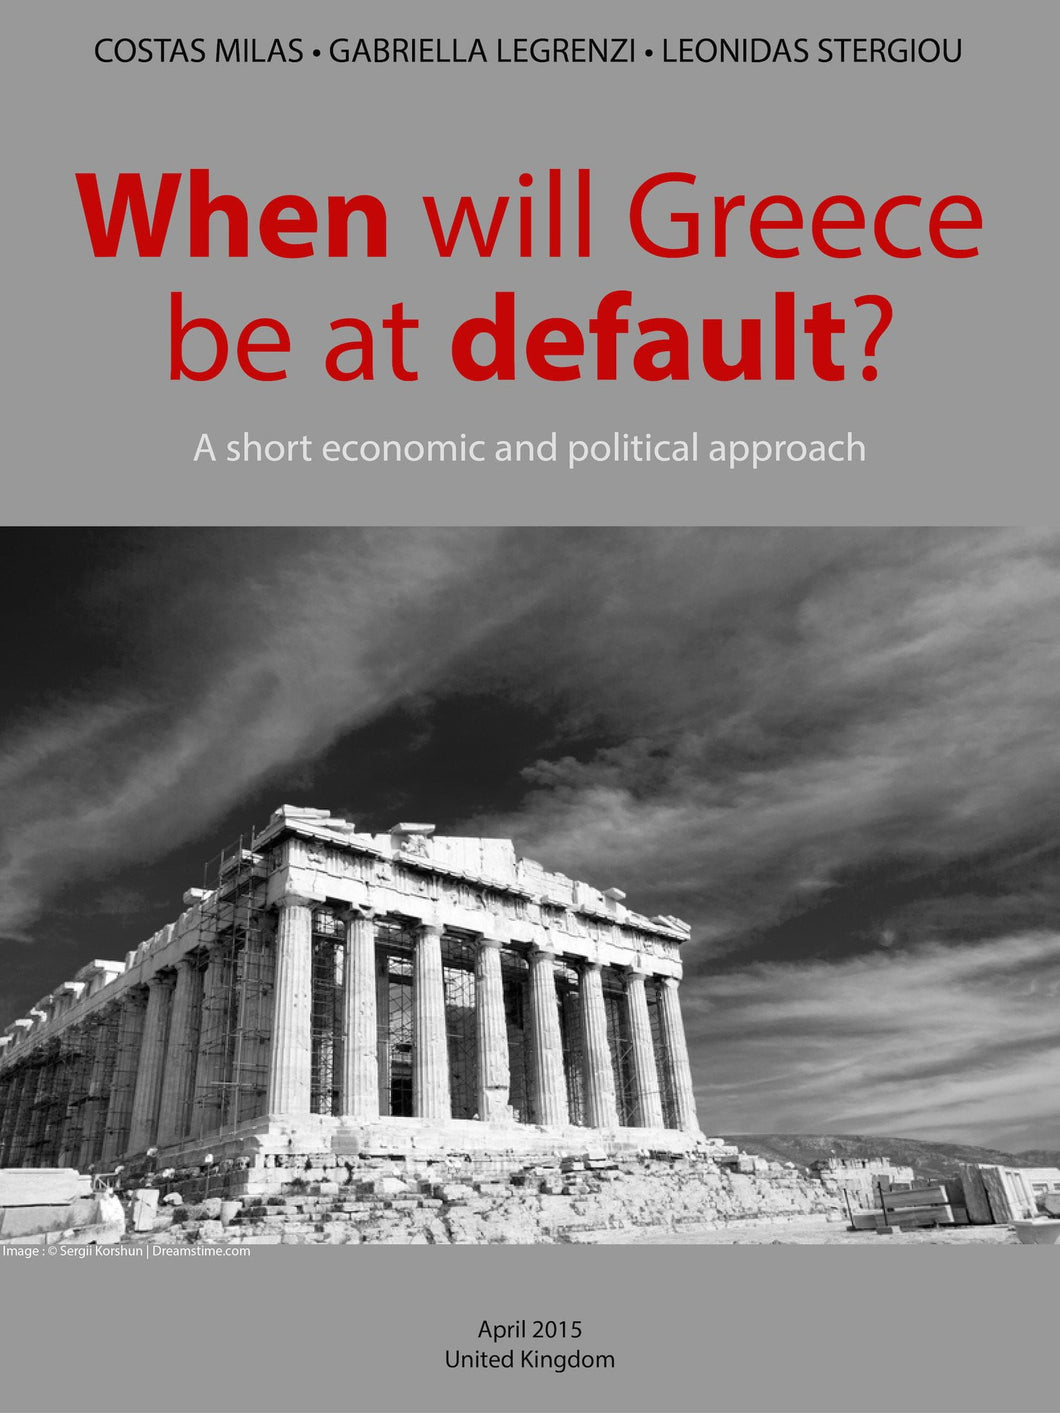 When will Greece be at default?